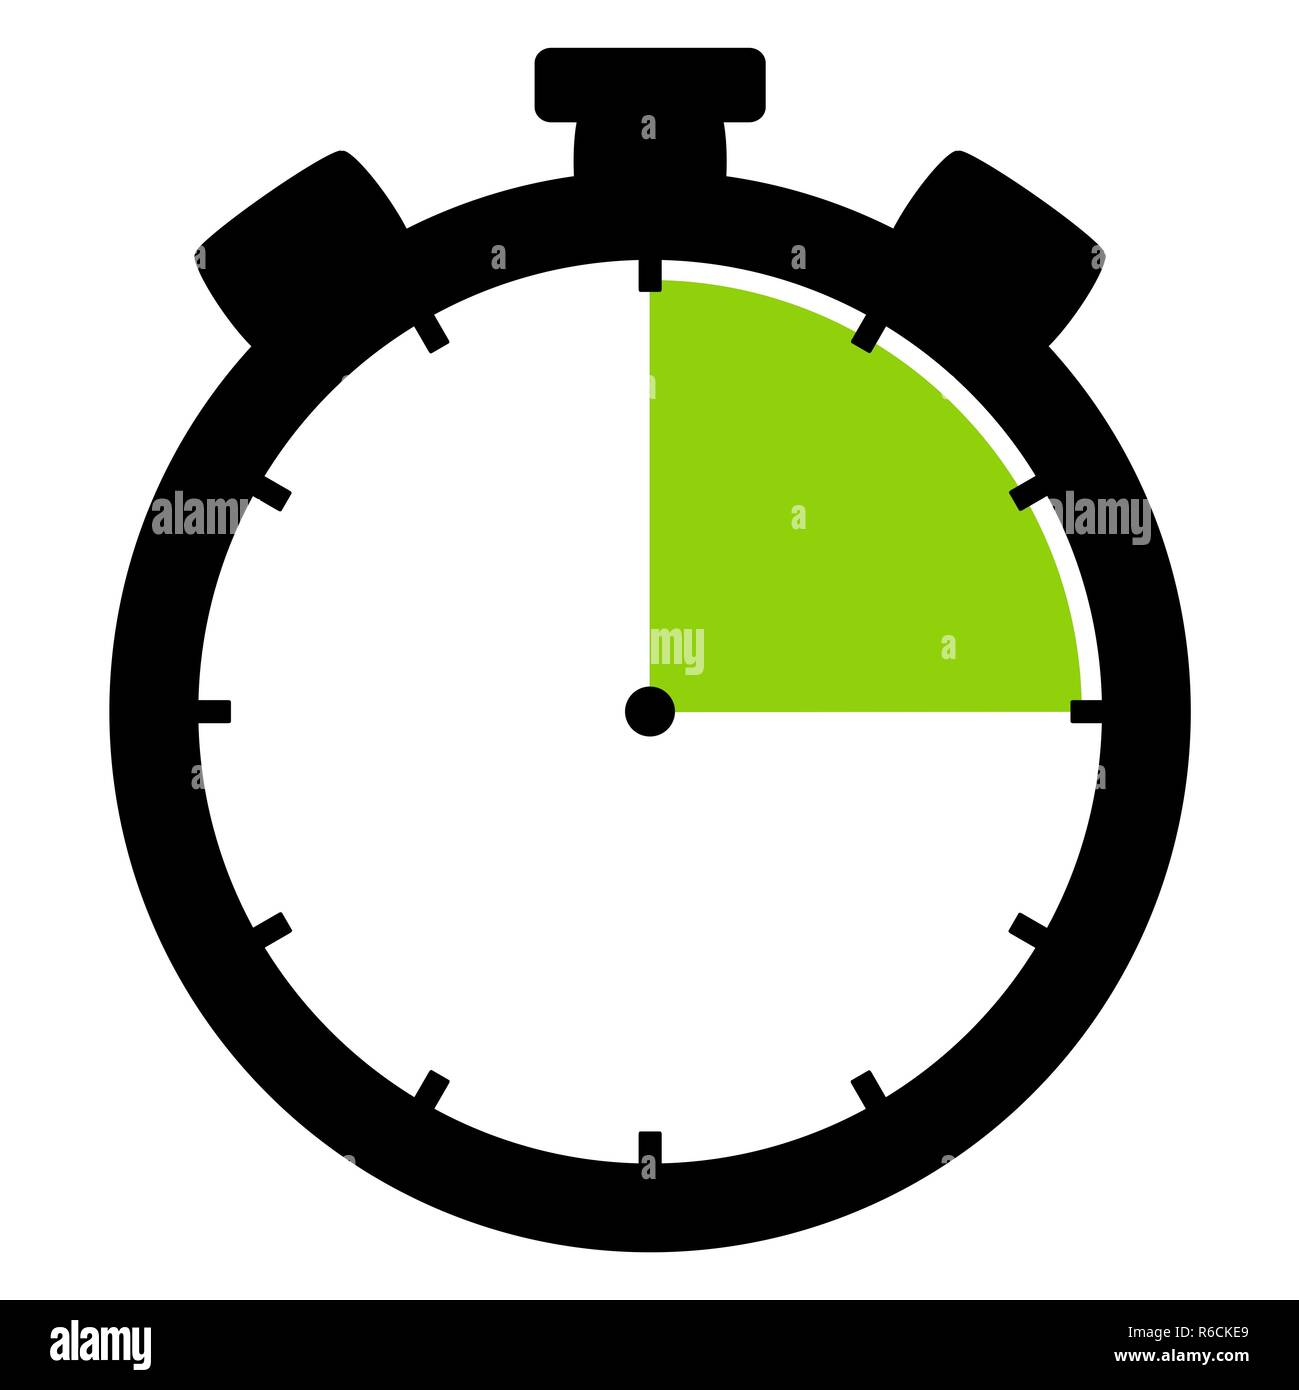 stopwatch icon: 15 minutes 15 seconds or 3 hours - Stock Image